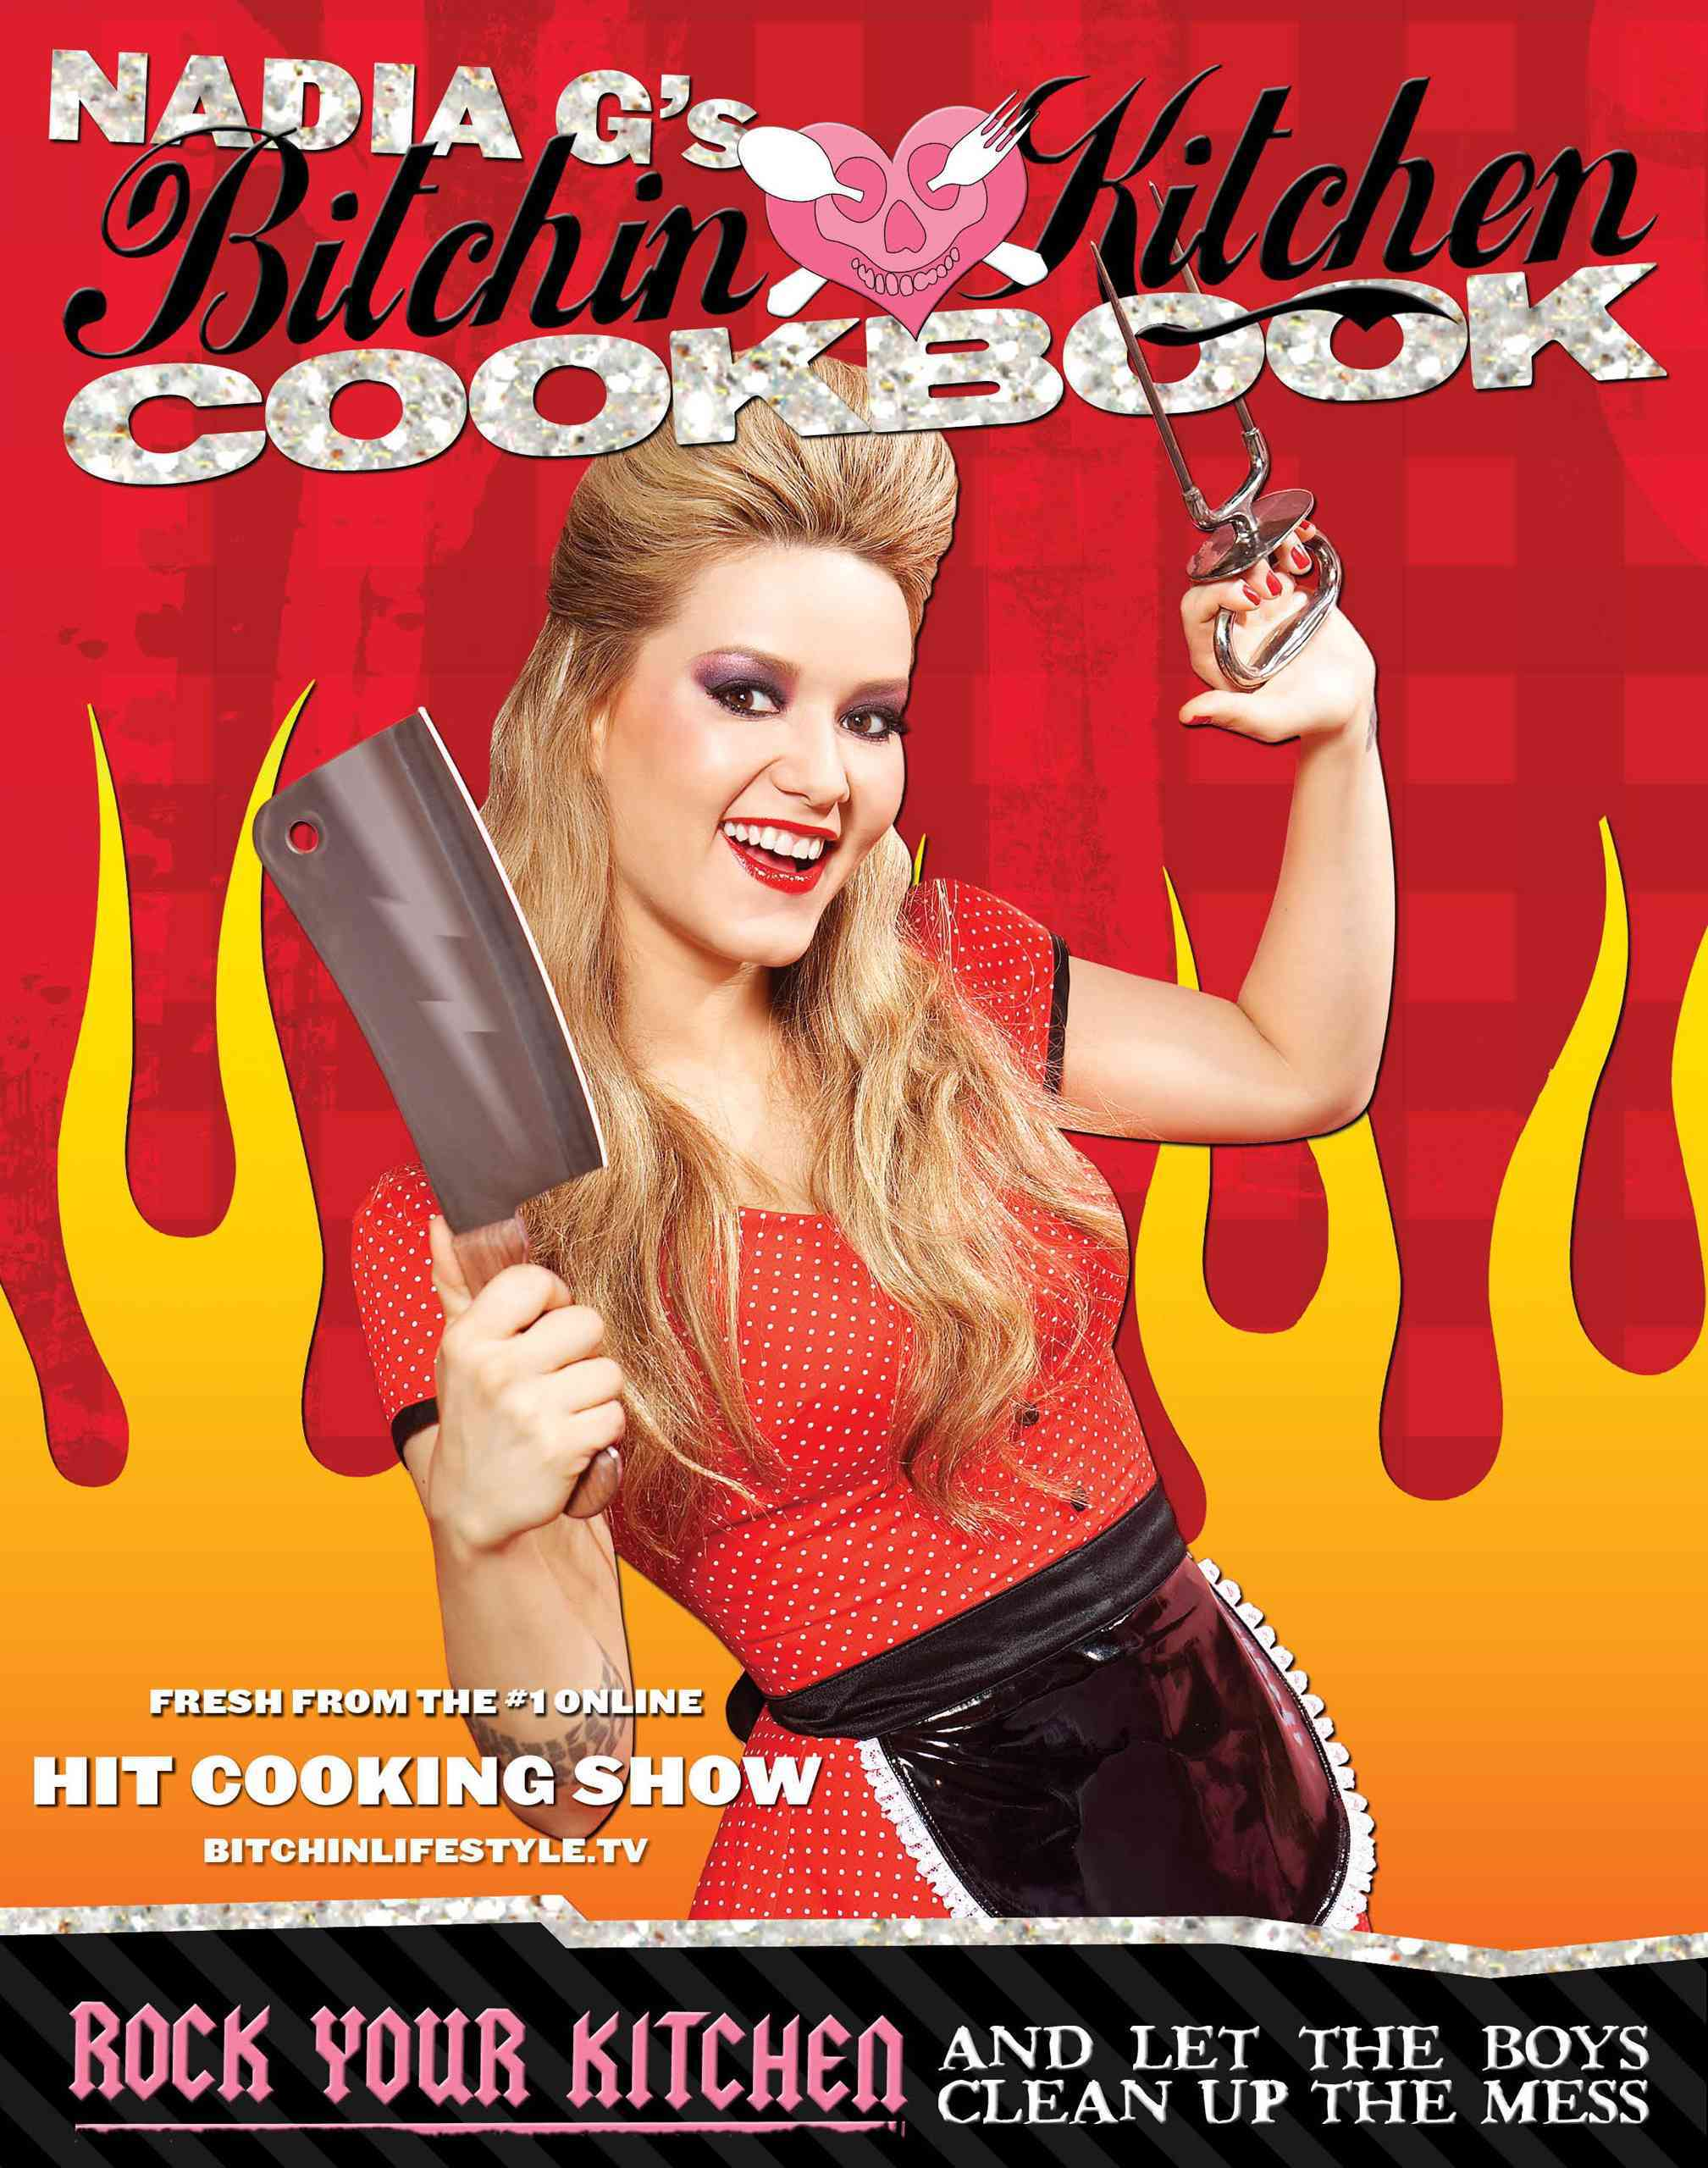 Nadia G's Bitchin' Kitchen Cookbook: Rock Your Kitchen and Let the Boys Clean Up the Mess (Paperback)